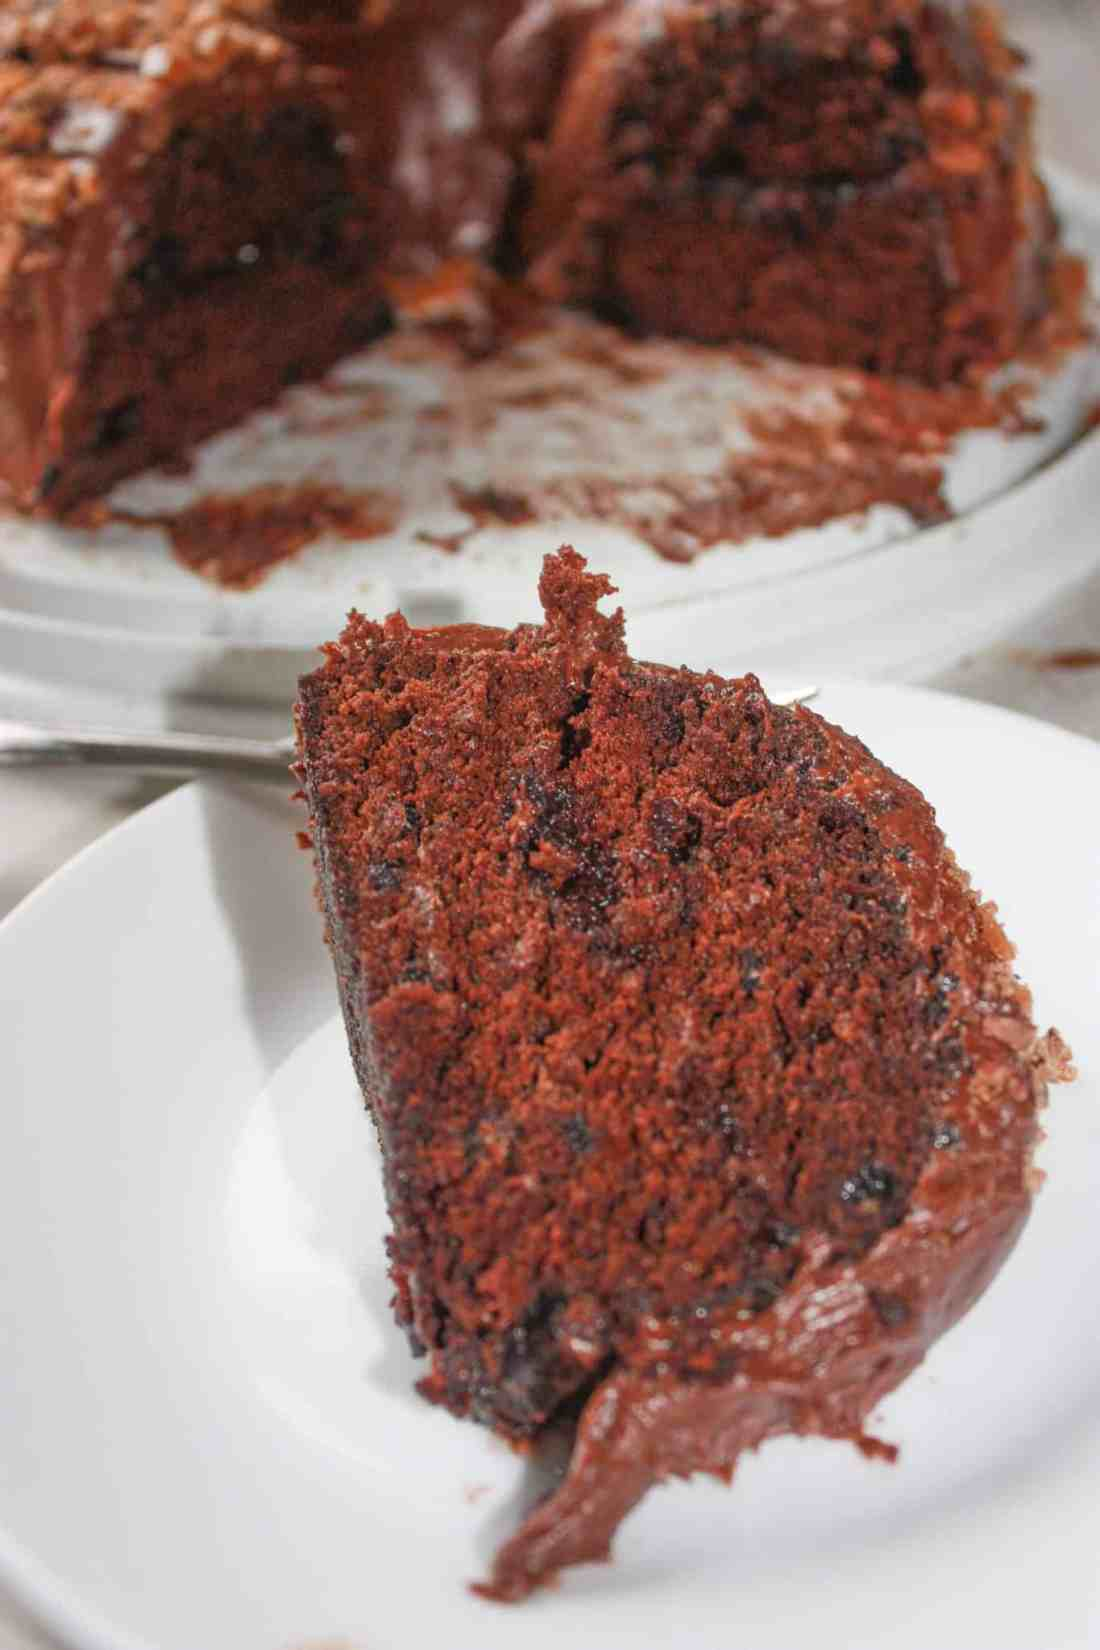 Microwave Chocolate Bundt Cake is a very easy dessert recipe.  It's light and fluffy texture will have you surprised that it is gluten free!